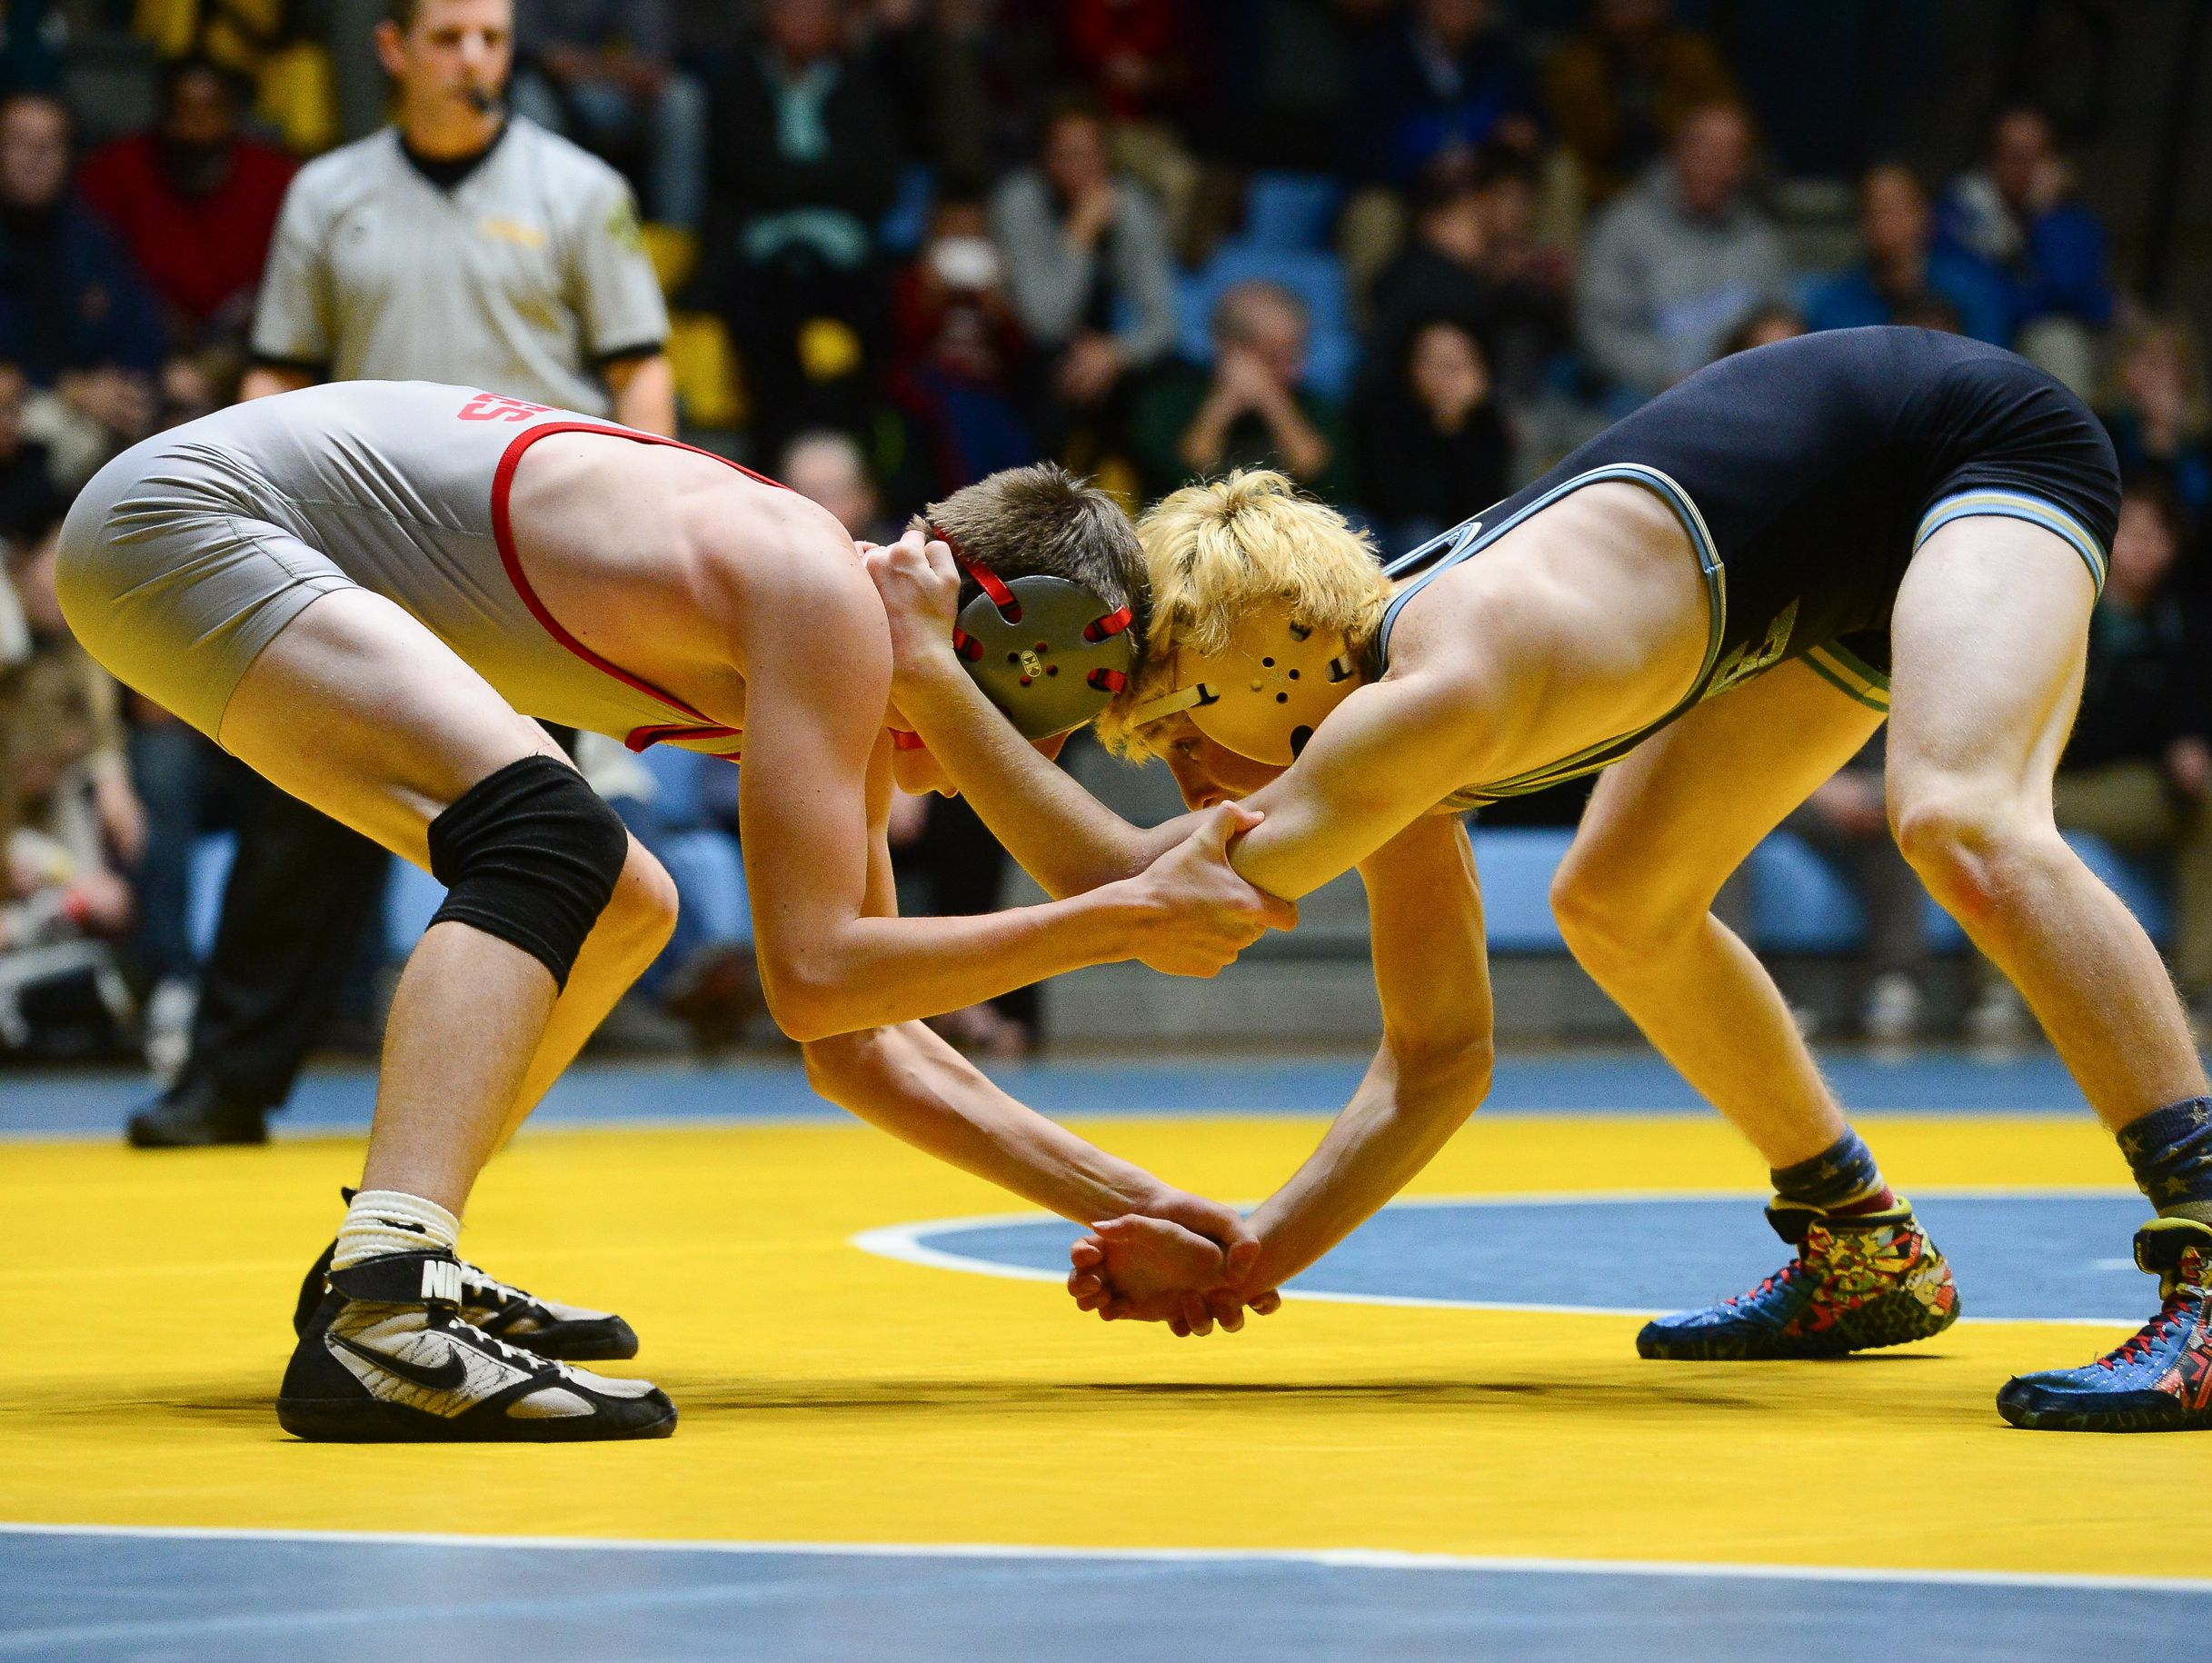 Cape's Anthony Caruso matches up against Smyrna's Nick Natarcola during the 120lb match up at Cape Henlopen High School on Wednesday, Jan. 18, 2017.